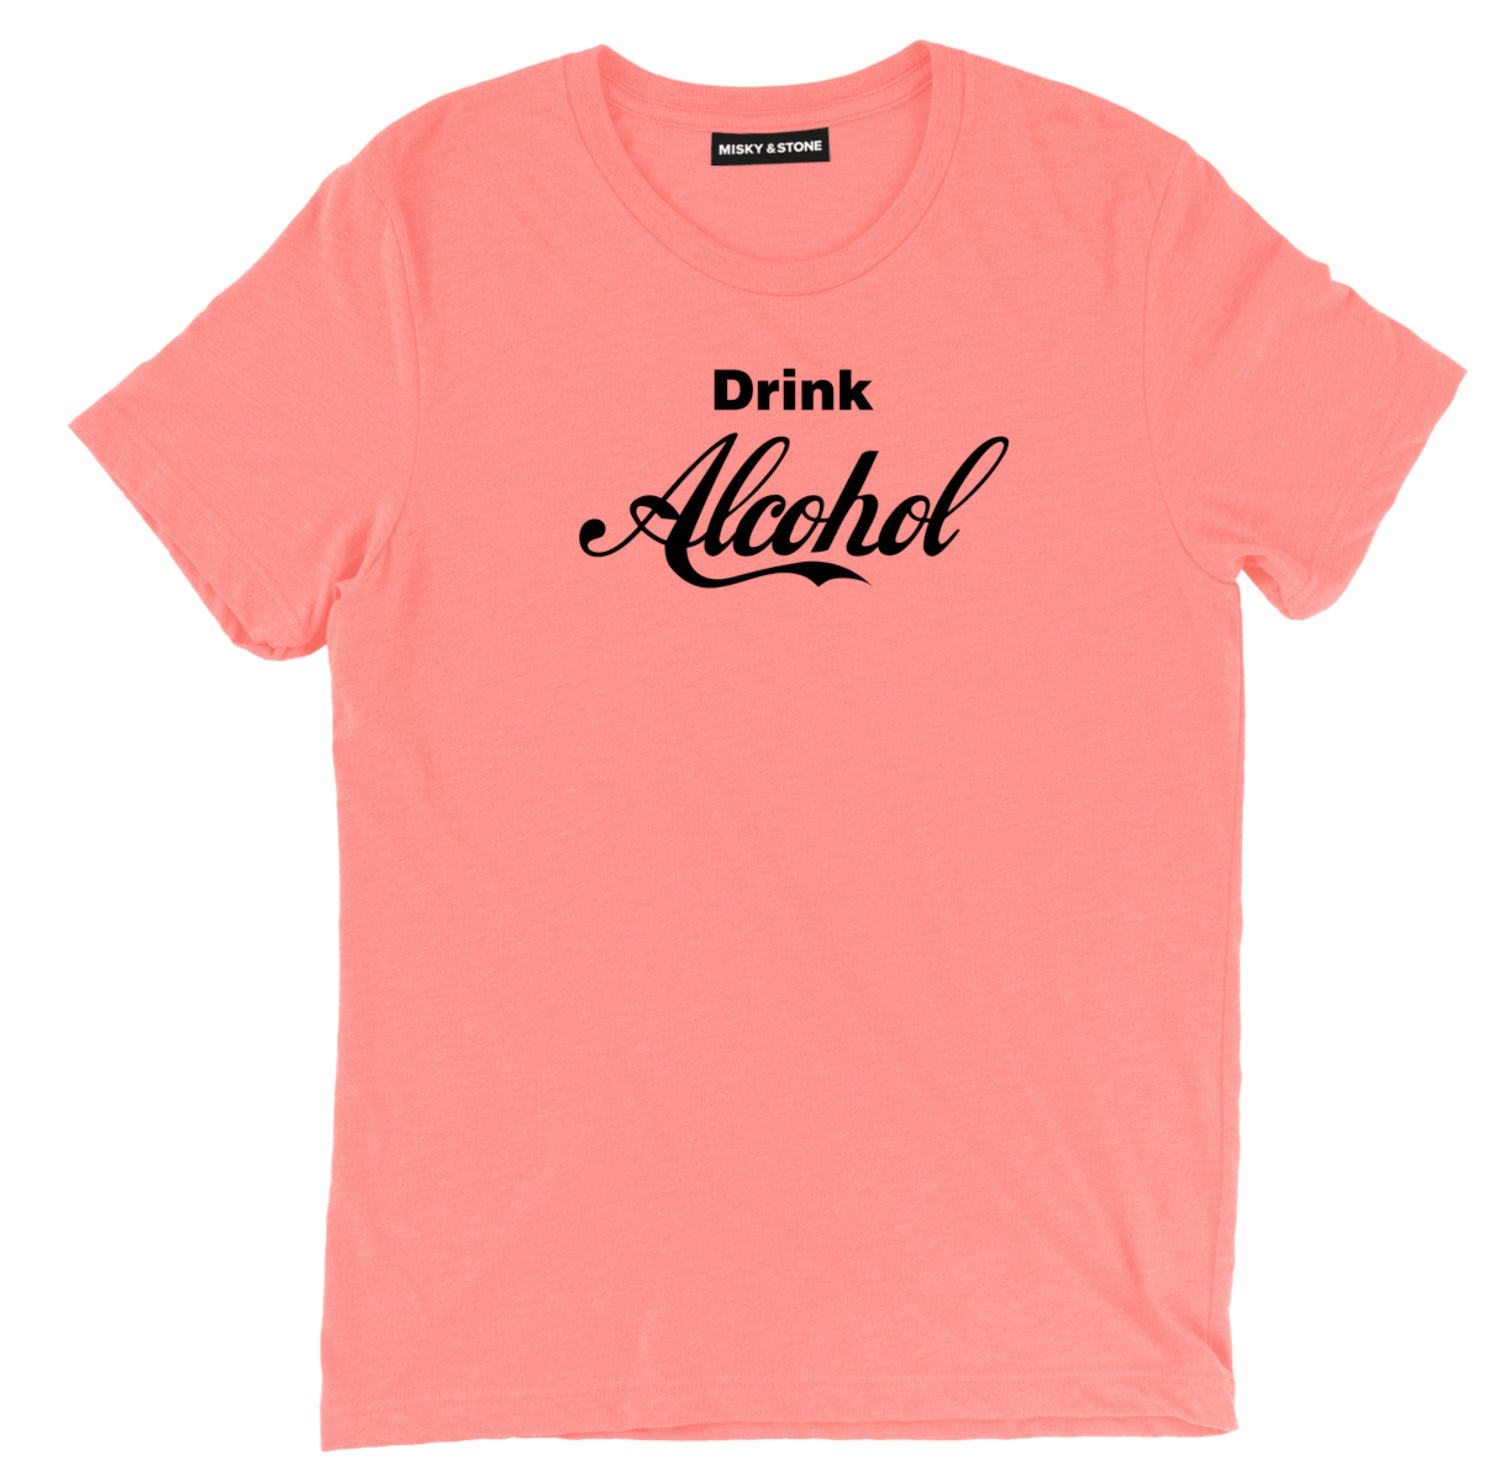 Drink Alcohol Tee